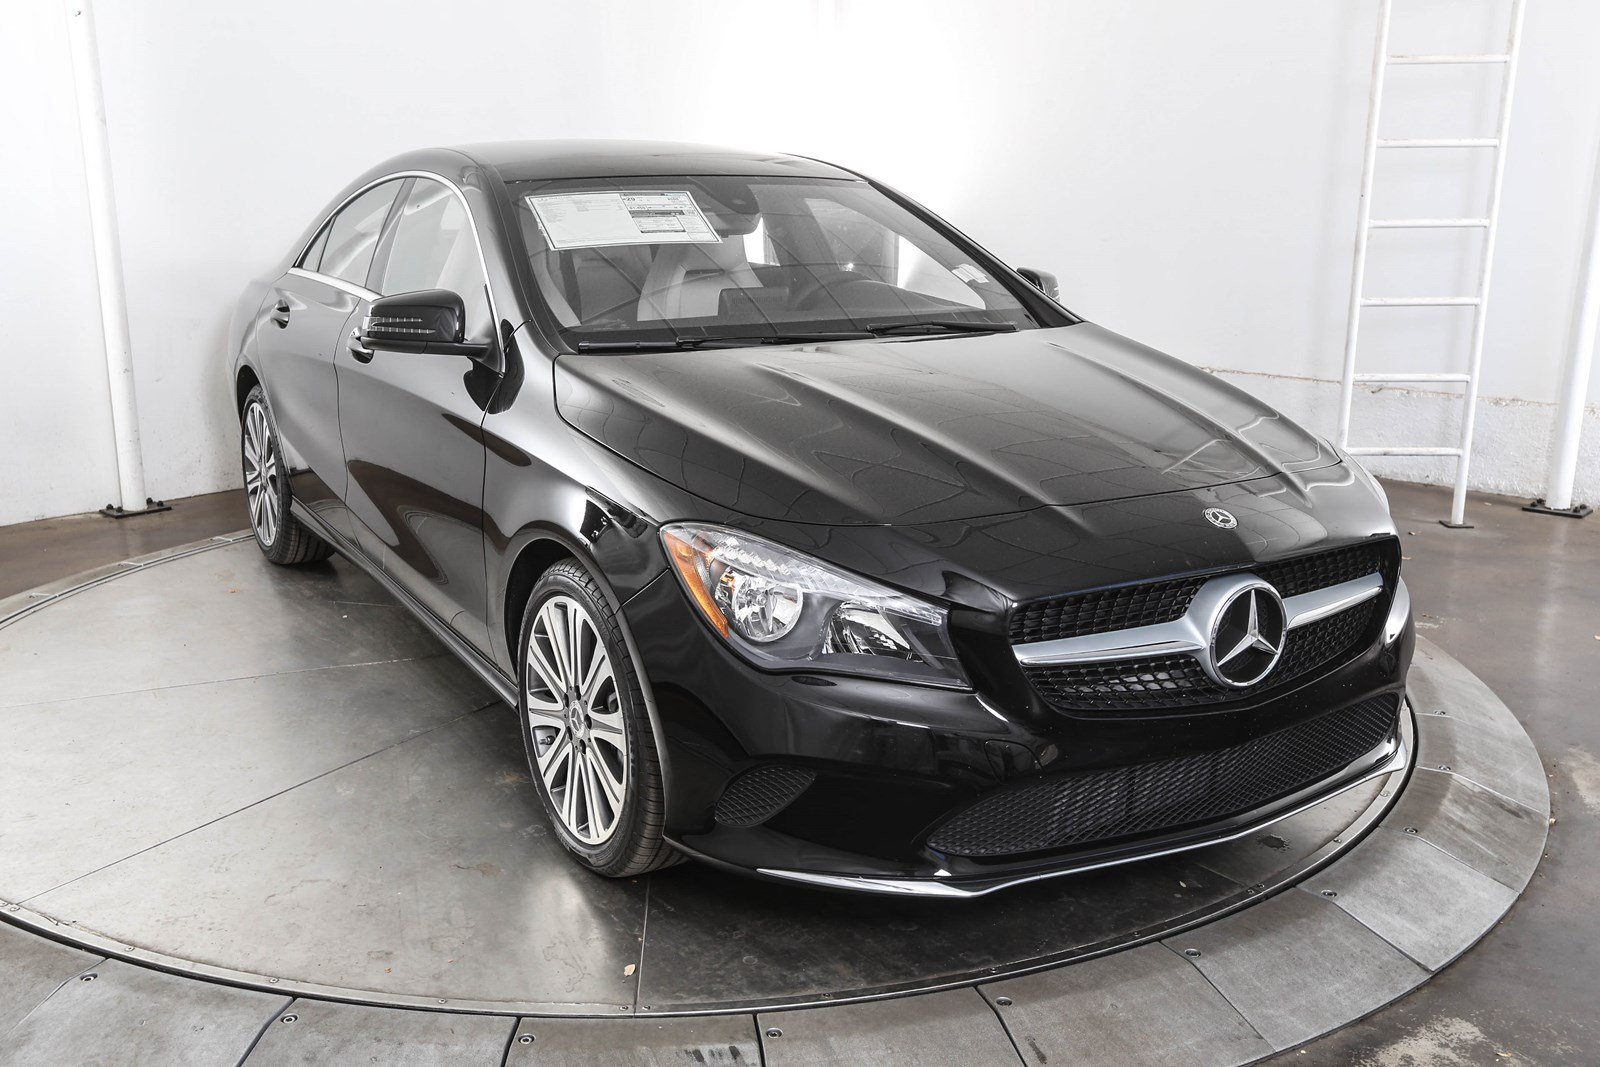 New 2018 mercedes benz cla cla 250 coupe in austin m58428 for Mercedes benz cla 250 msrp